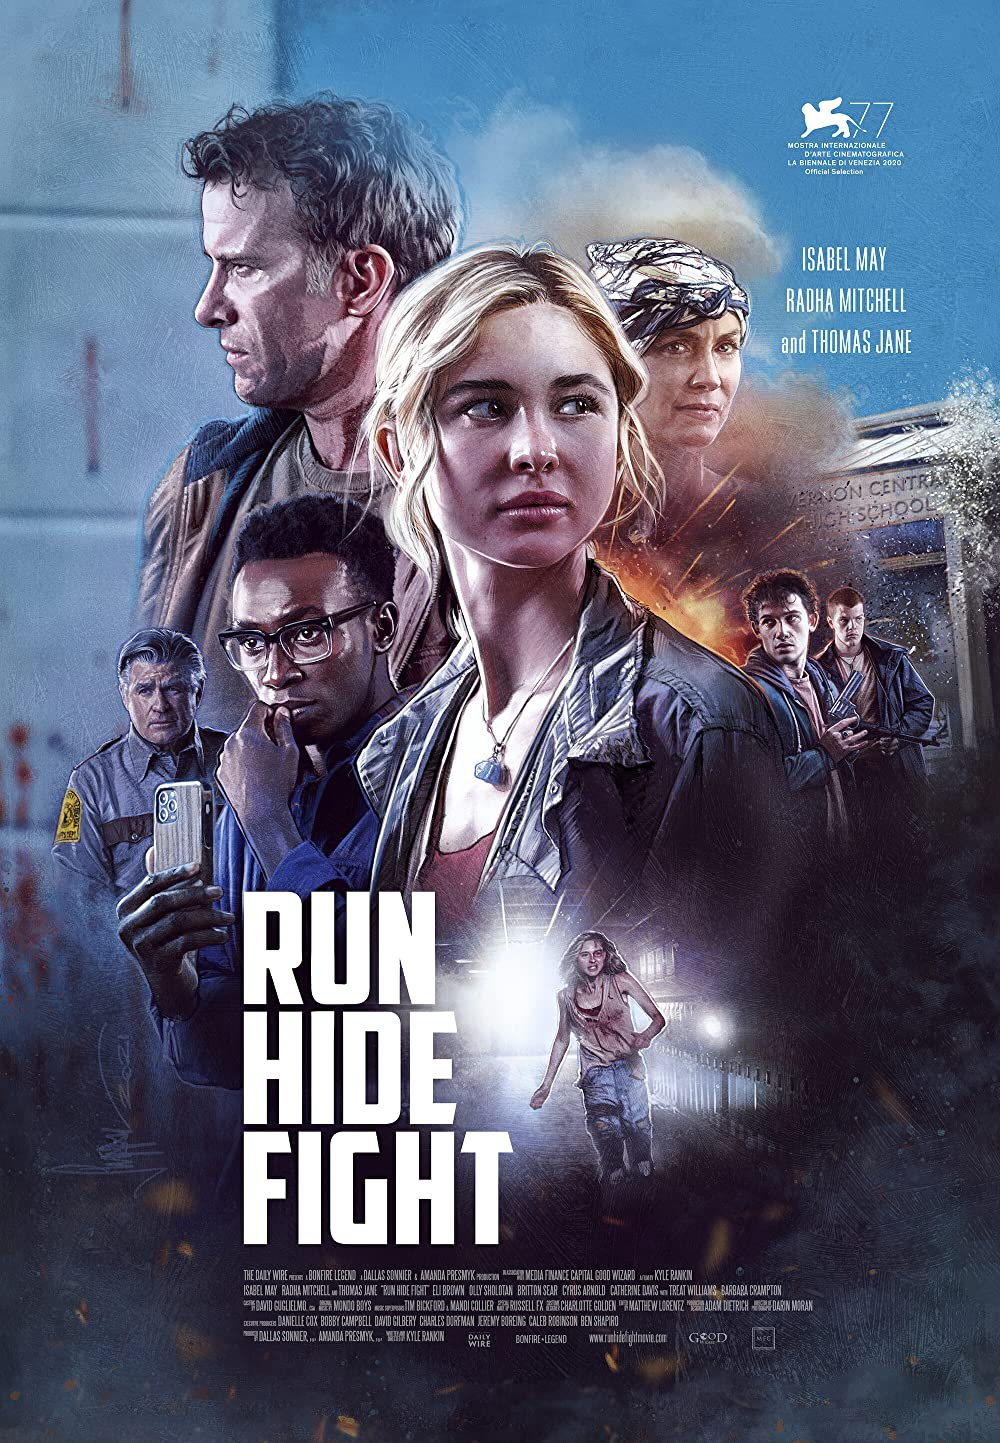 Film poster for Run Hide Fight featuring the cast